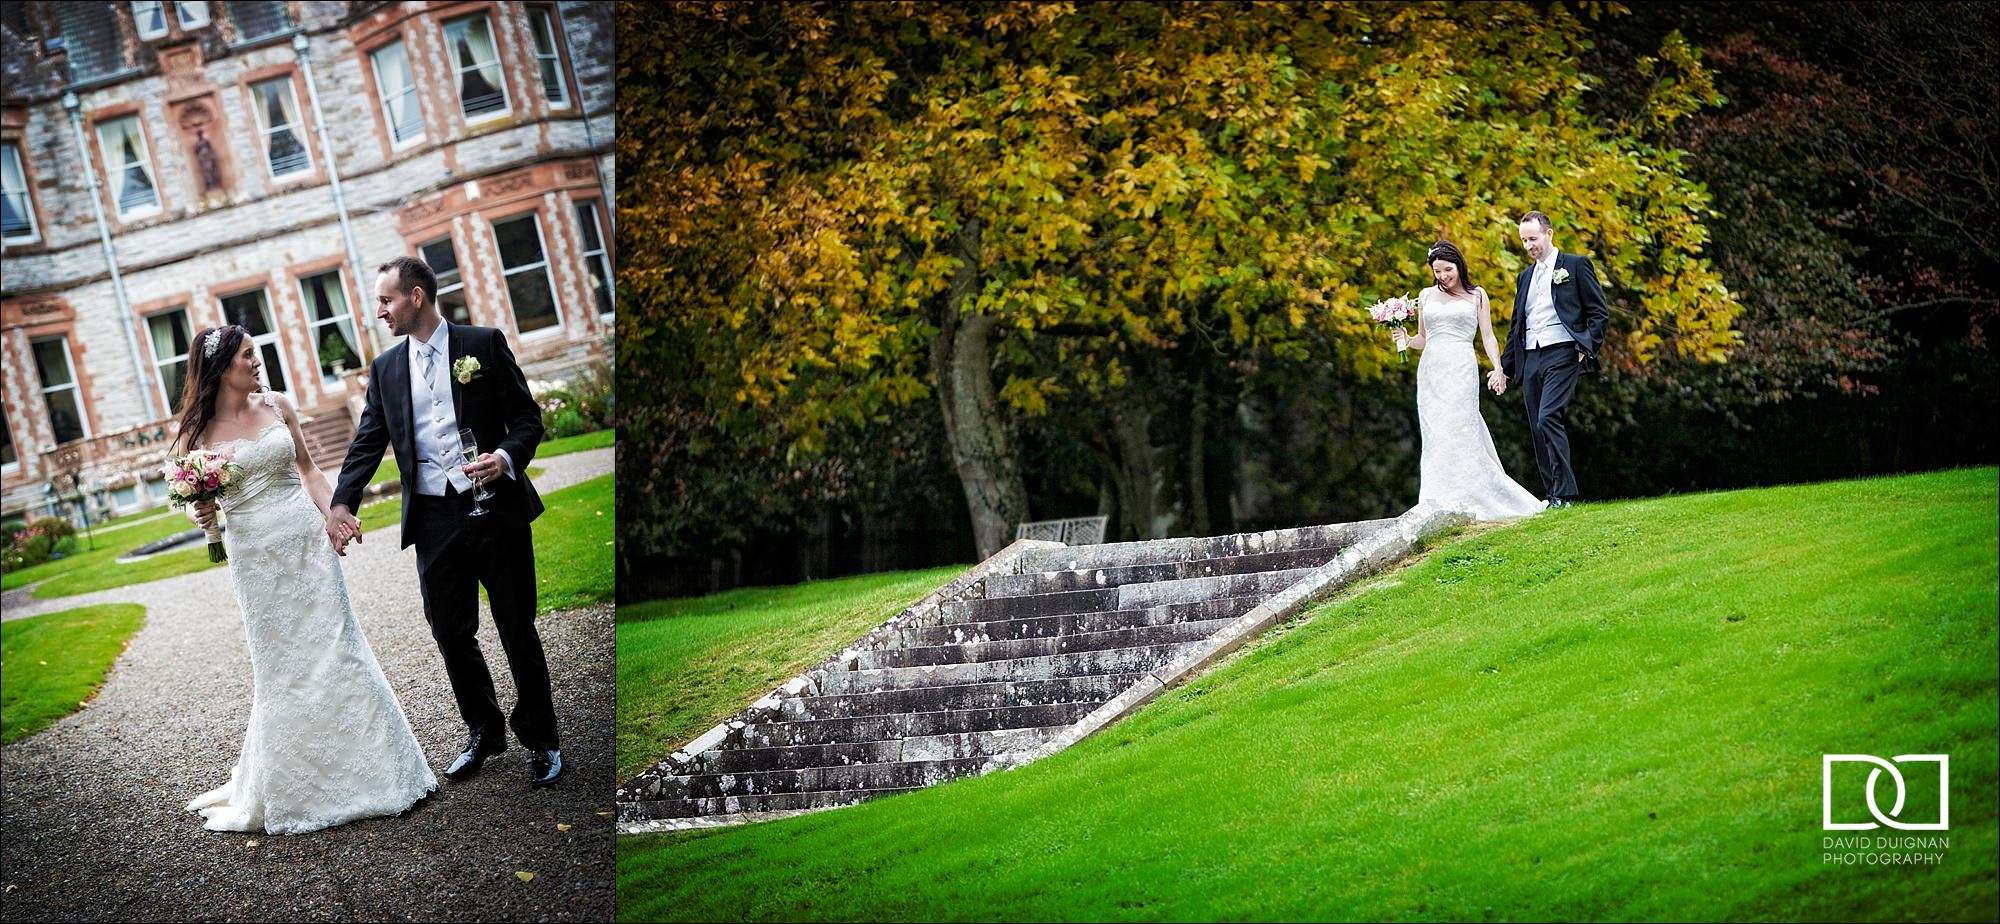 dublin wedding photographer david duignan photography castle leslie weddings Ireland 0023